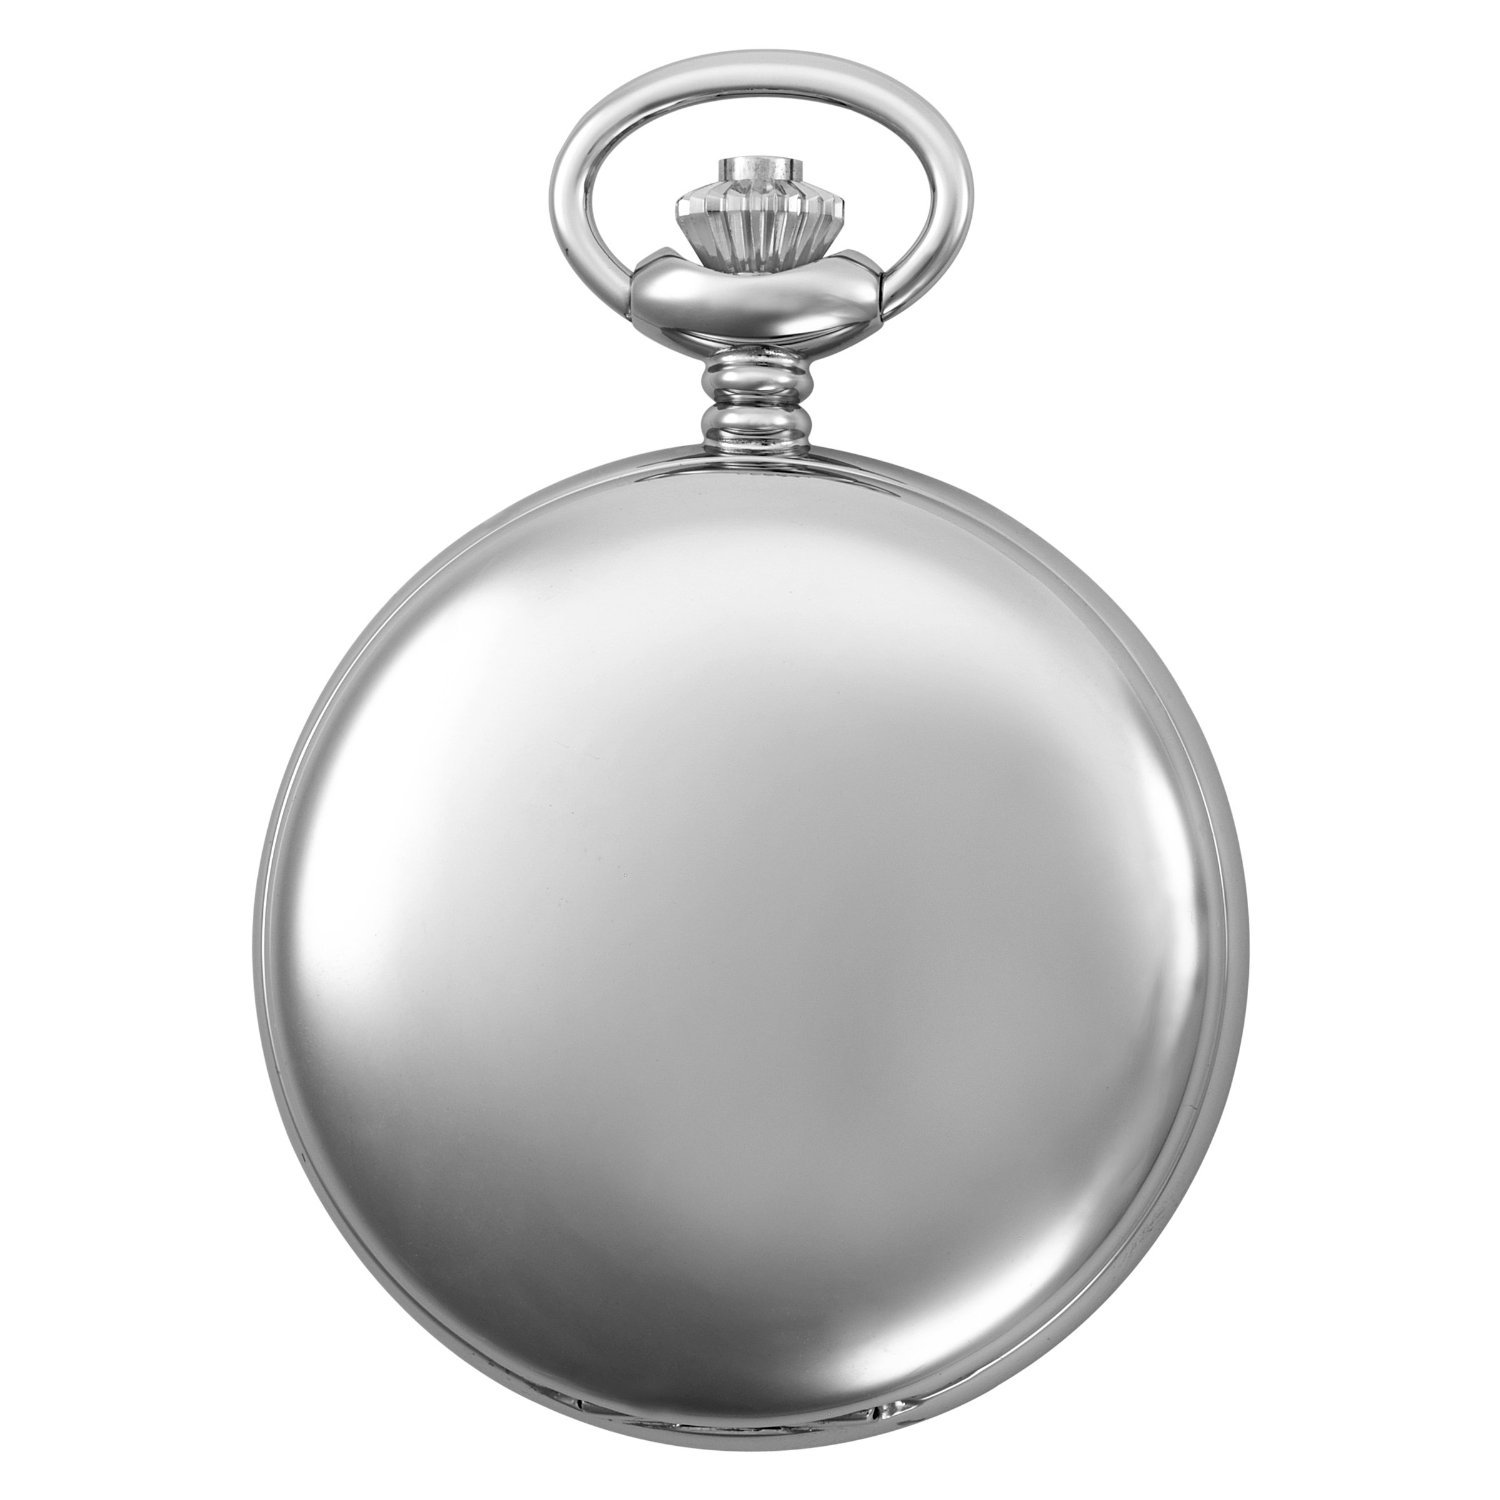 Gotham Men's Silver-Tone Polished Finish Covered Quartz Pocket Watch # GWC15042S by Gotham (Image #2)